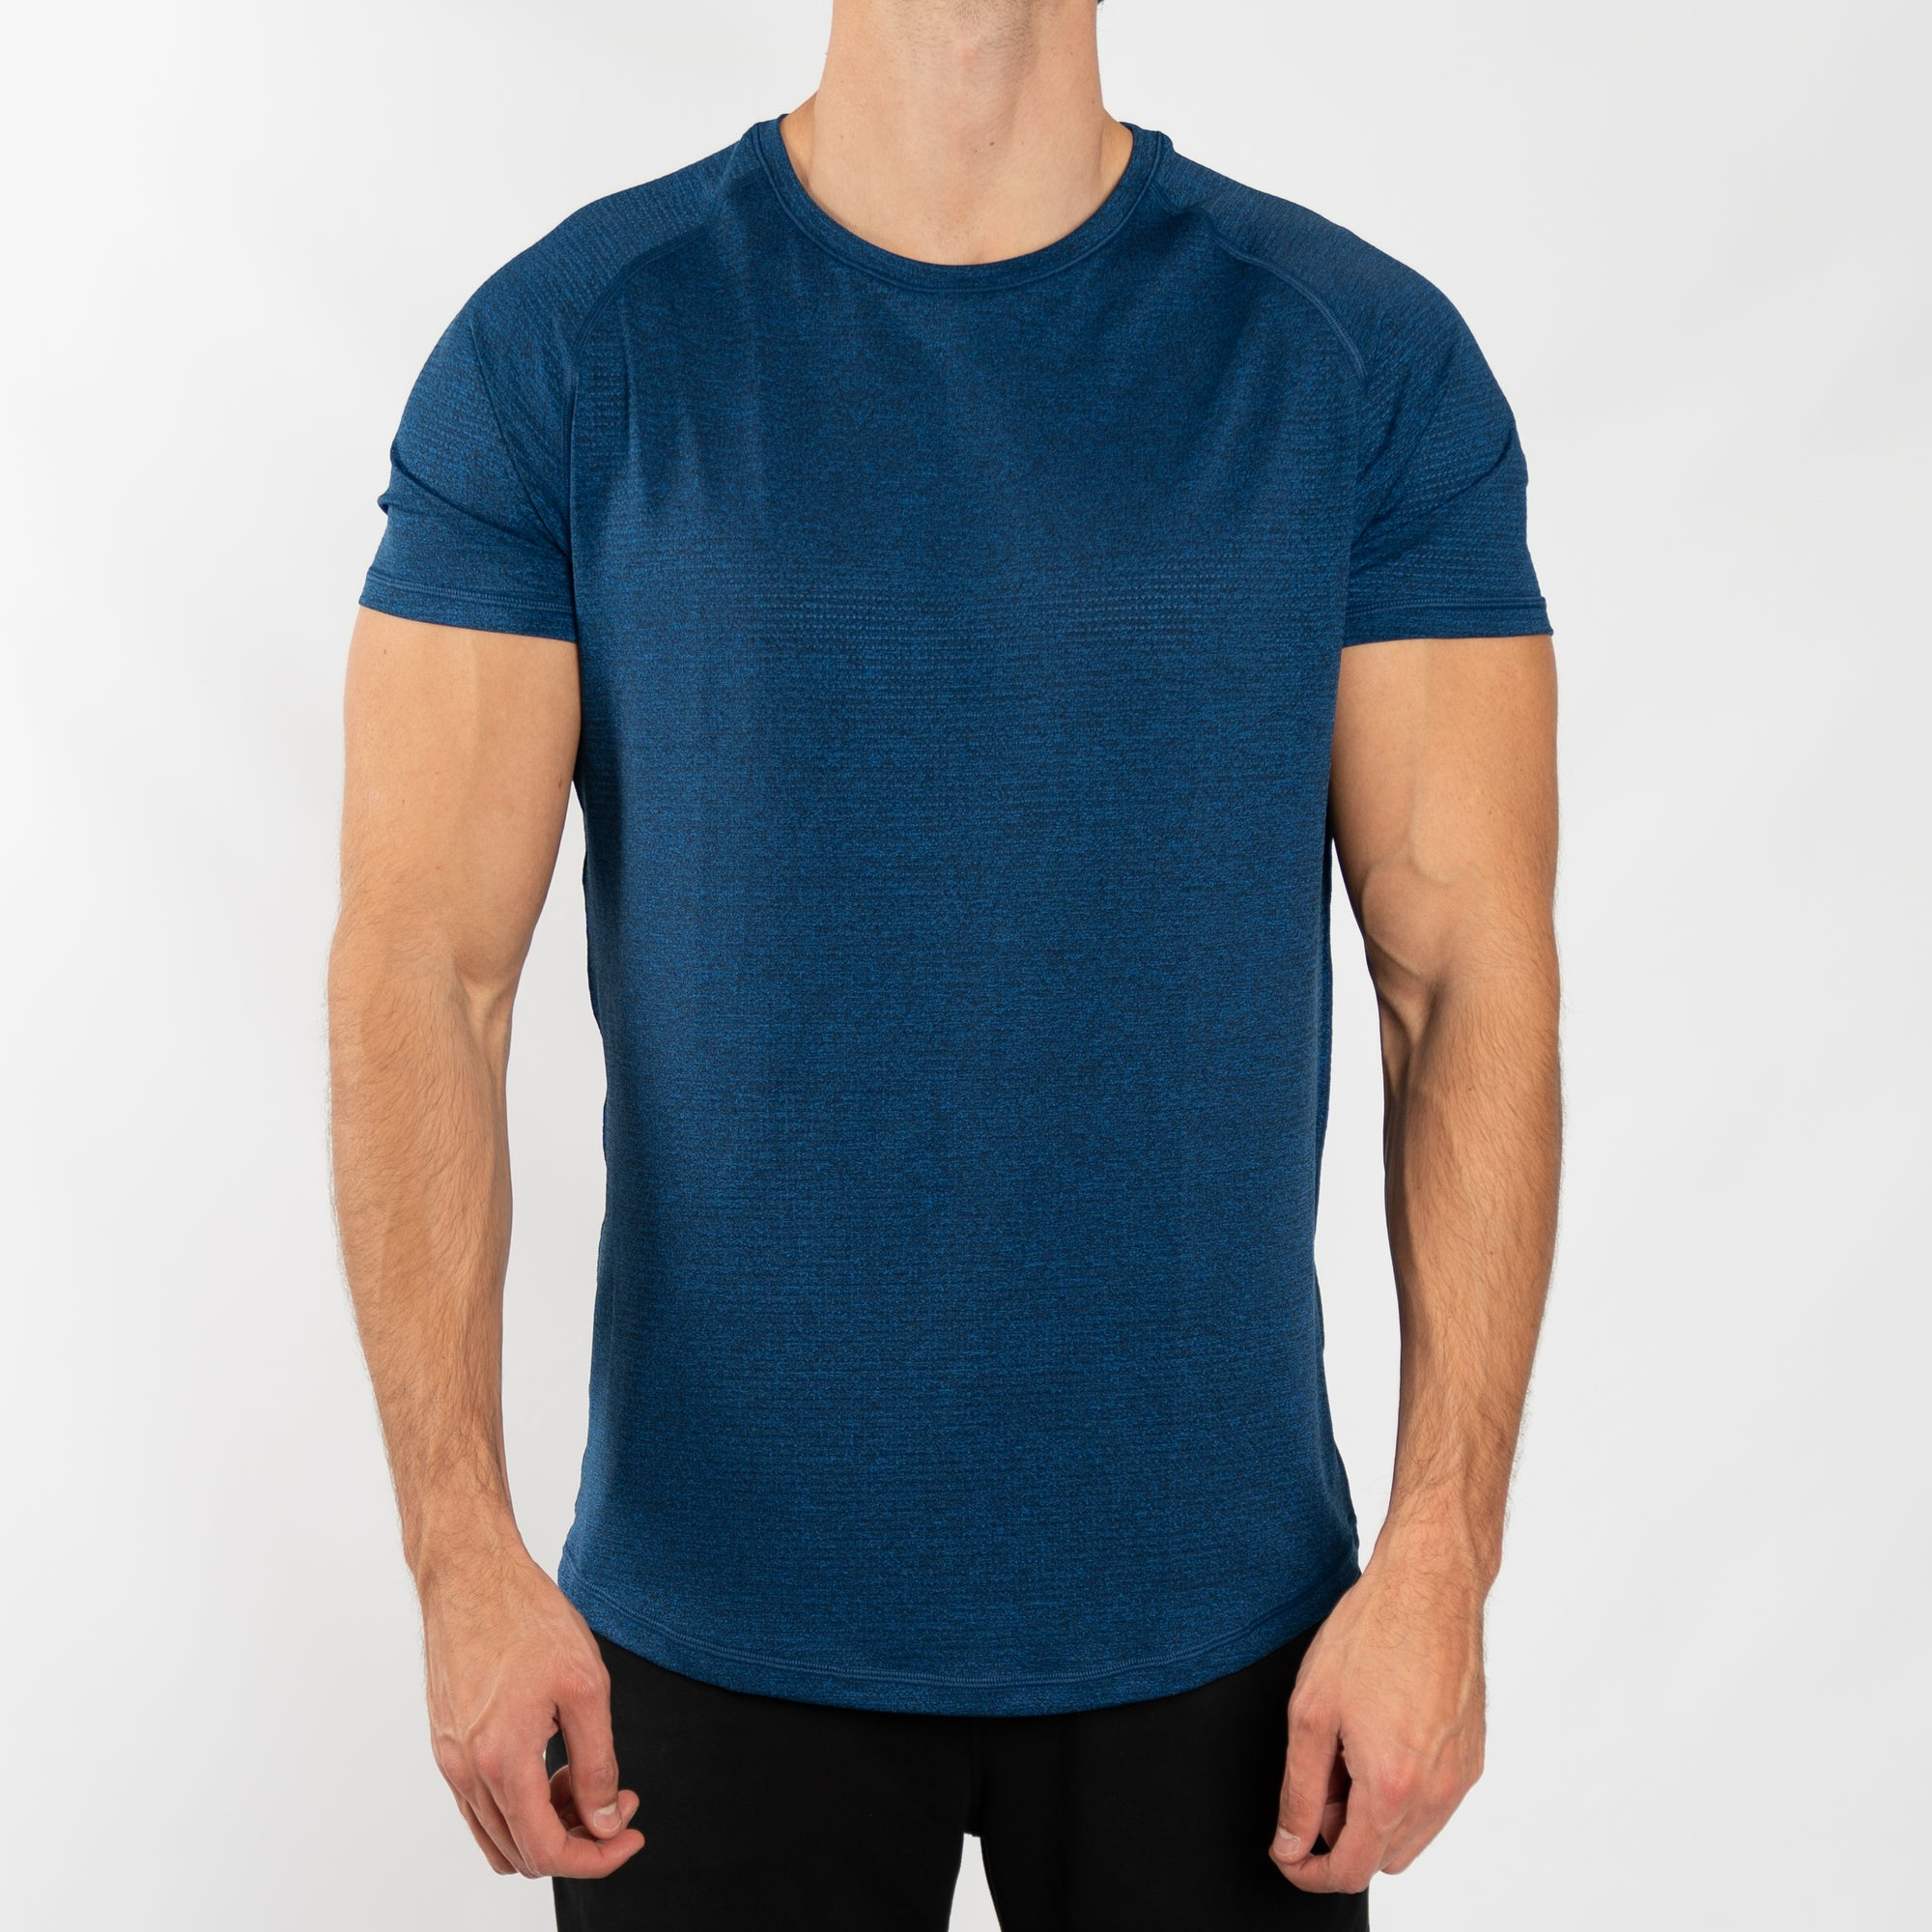 Men's Performance Tee in Blue - Southern Athletica